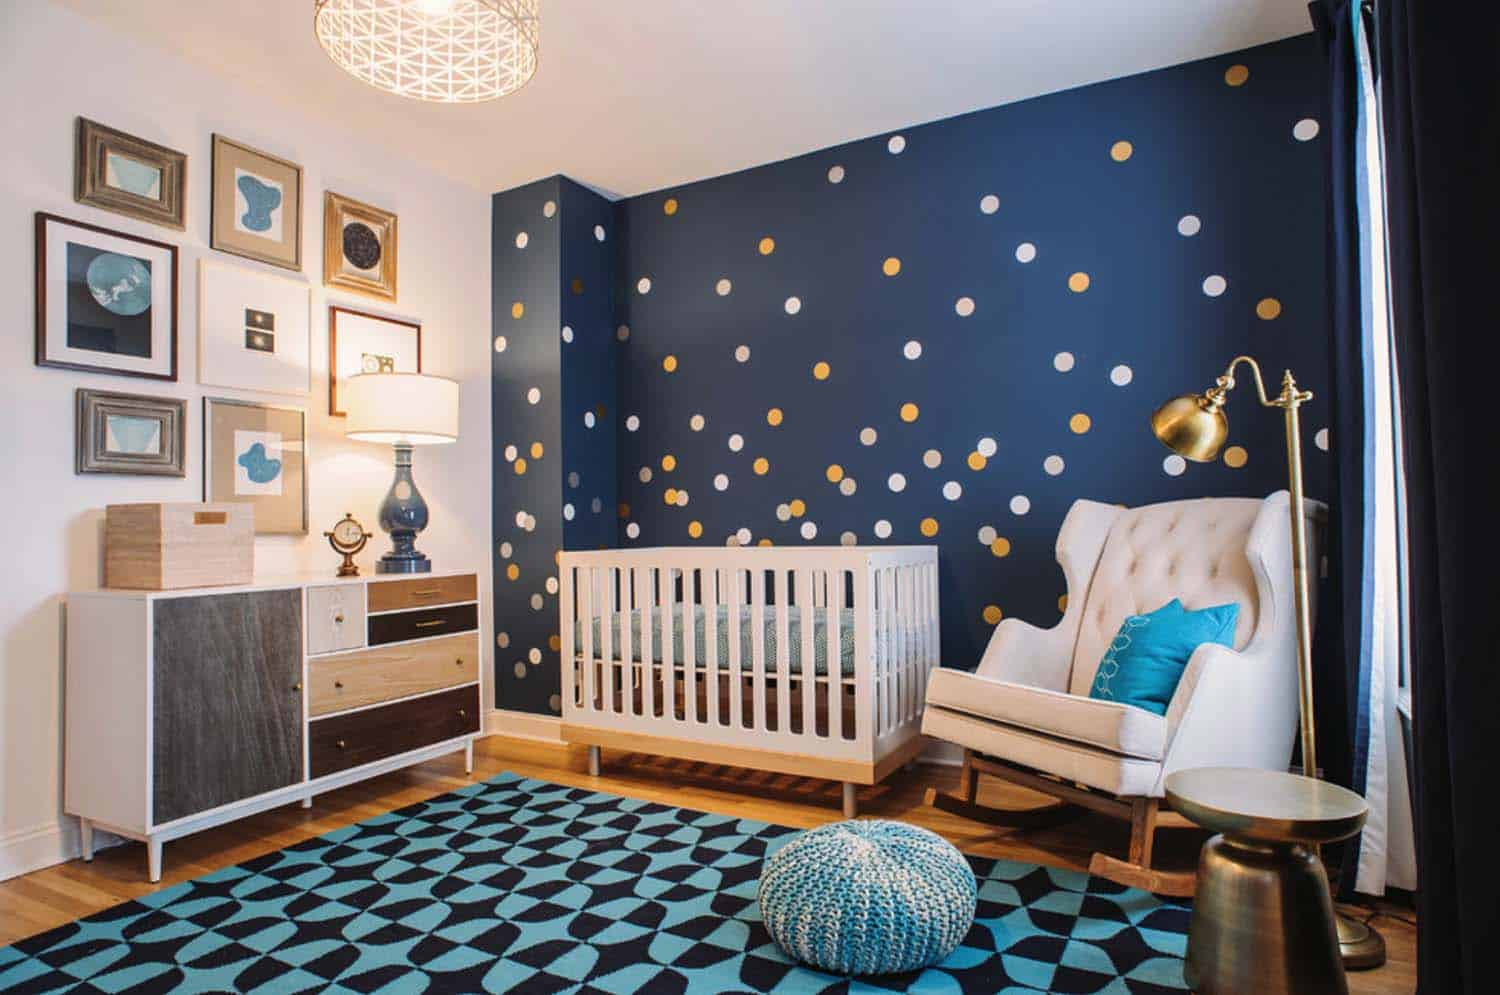 Stylish Nursery Decorating Ideas-015-1 Kindesign